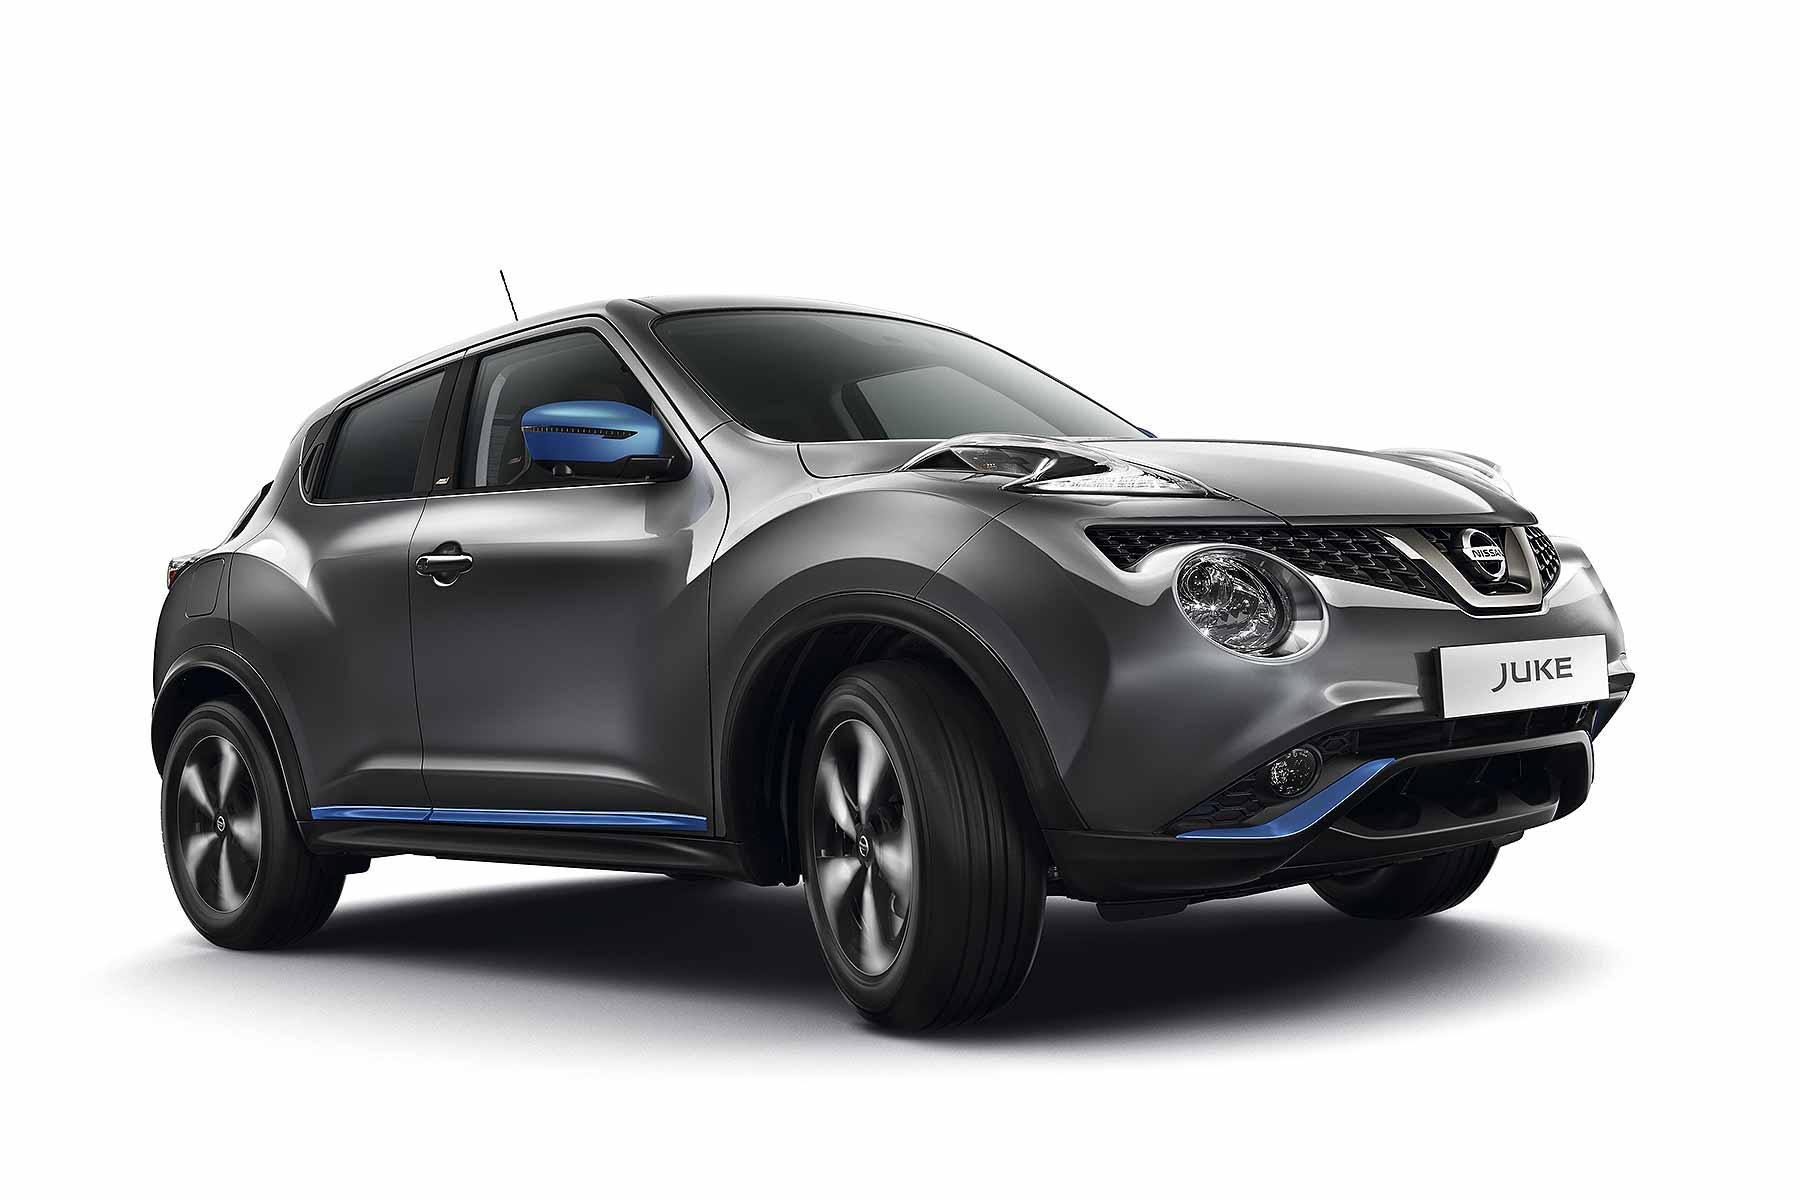 nissan juke revised for 2018 with added bose audio motoring research. Black Bedroom Furniture Sets. Home Design Ideas